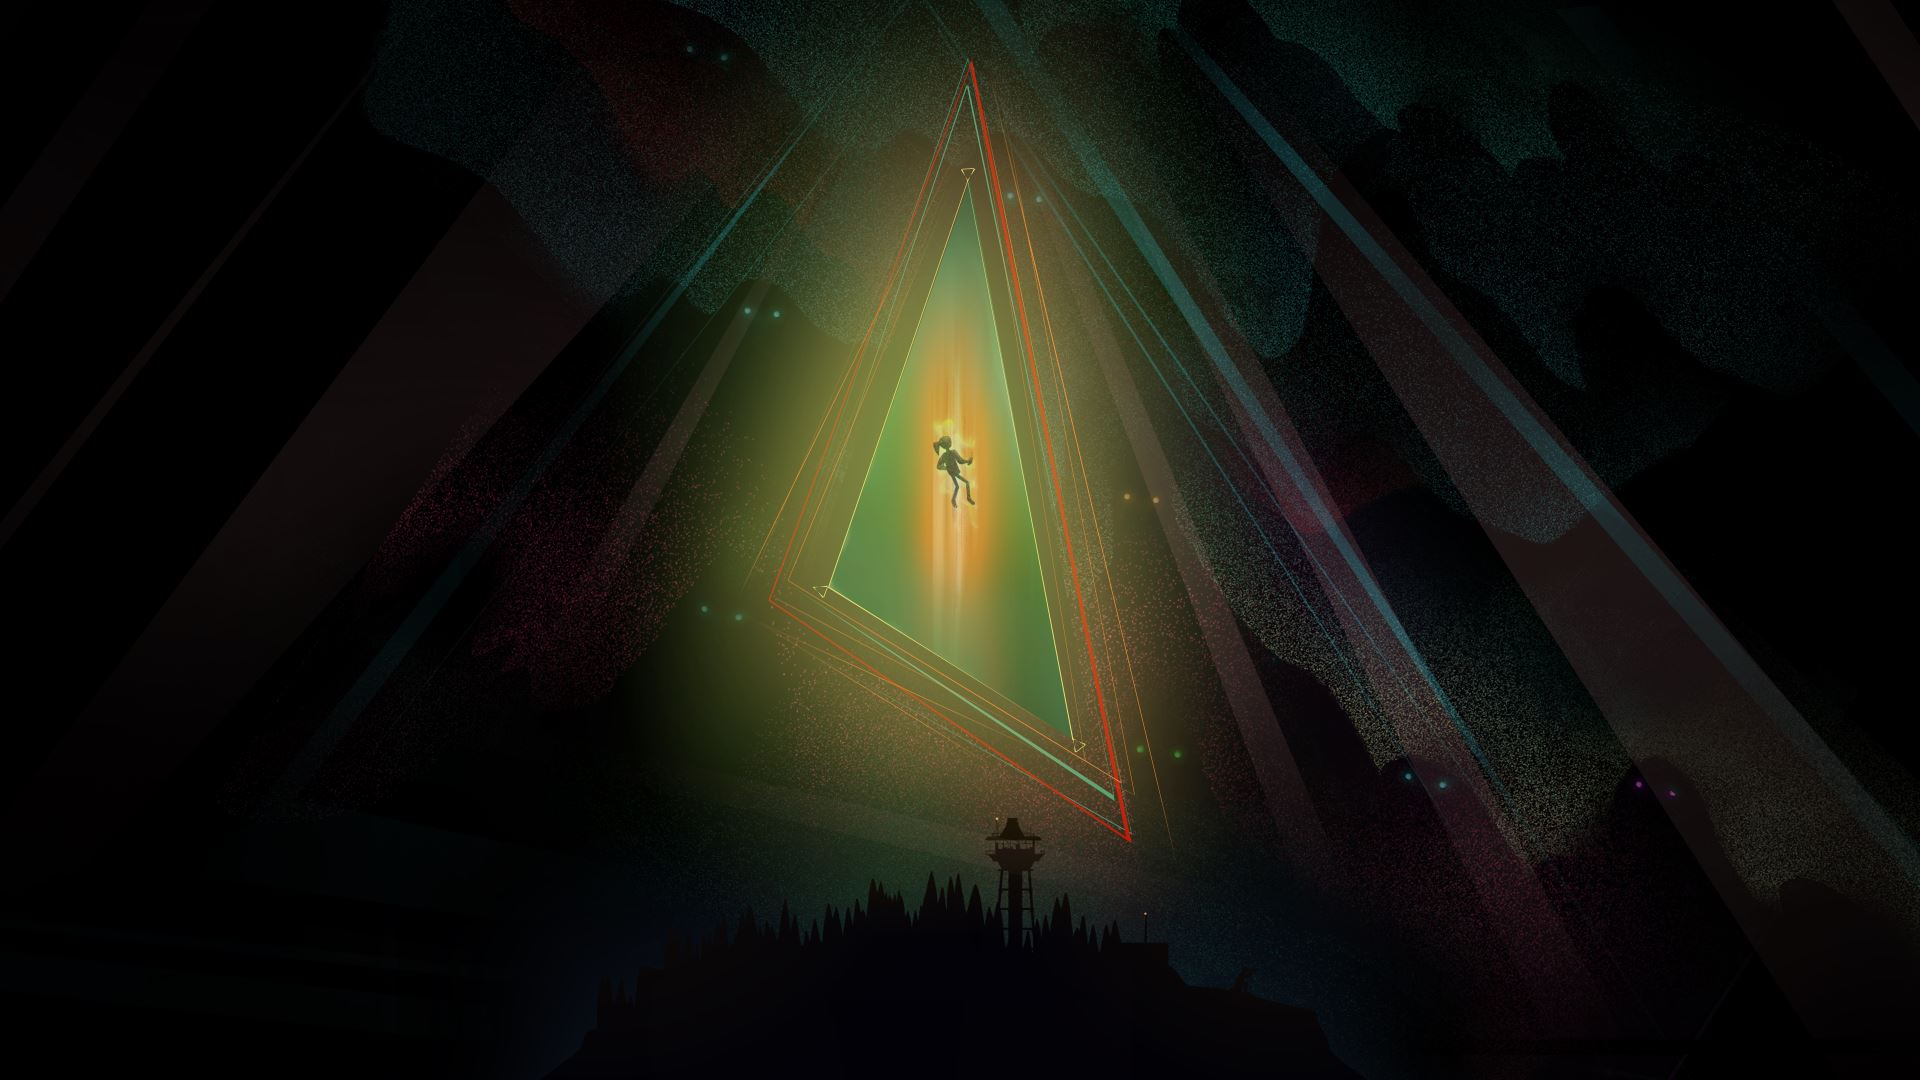 oxenfree video game wallpaper 61510